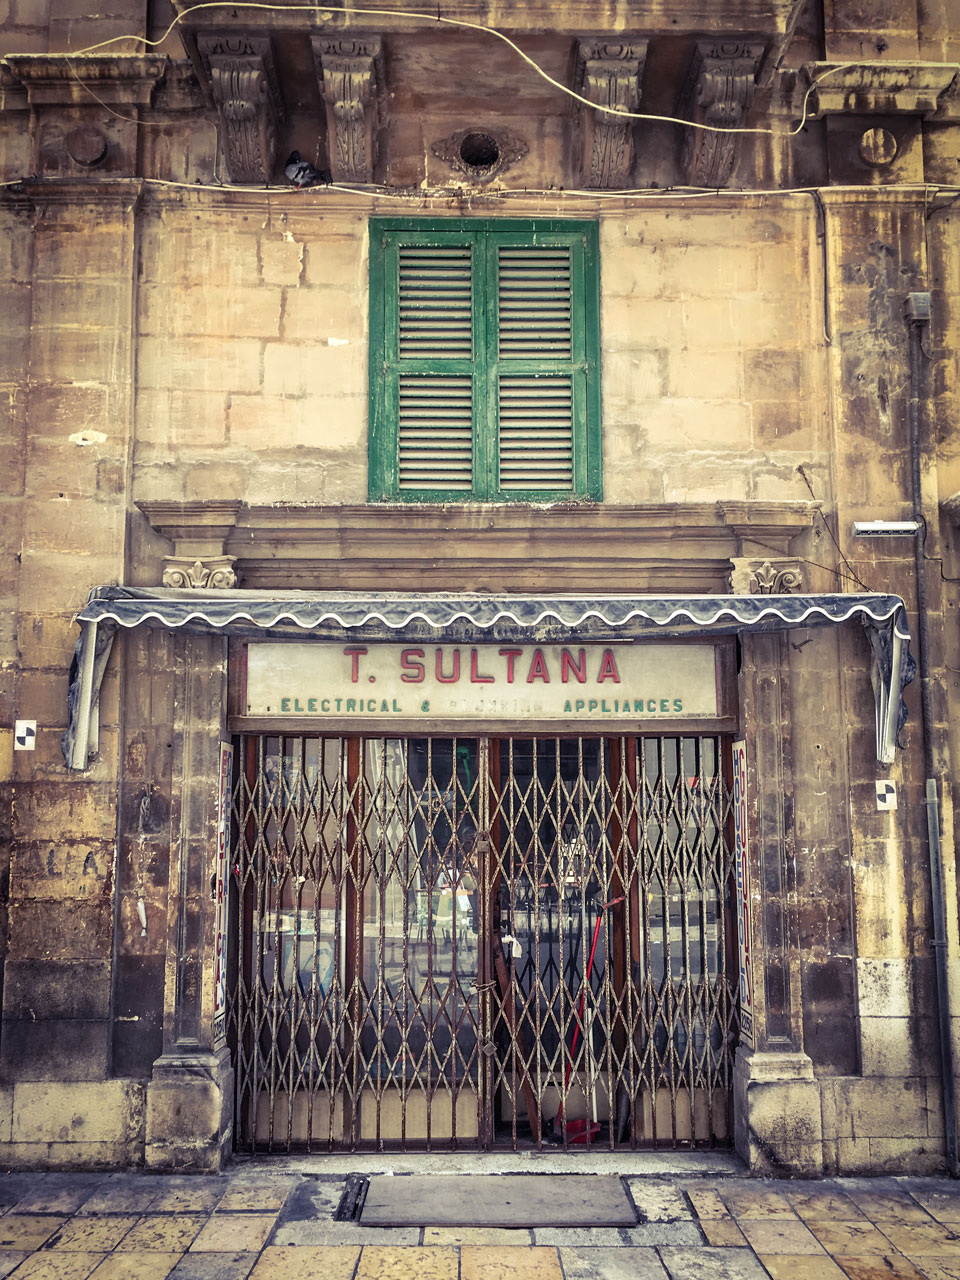 disappearingMalta - T. Sultana Electrical Appliances, retro storefront, Valletta, Malta ©Helen Jones-Florio photography prints